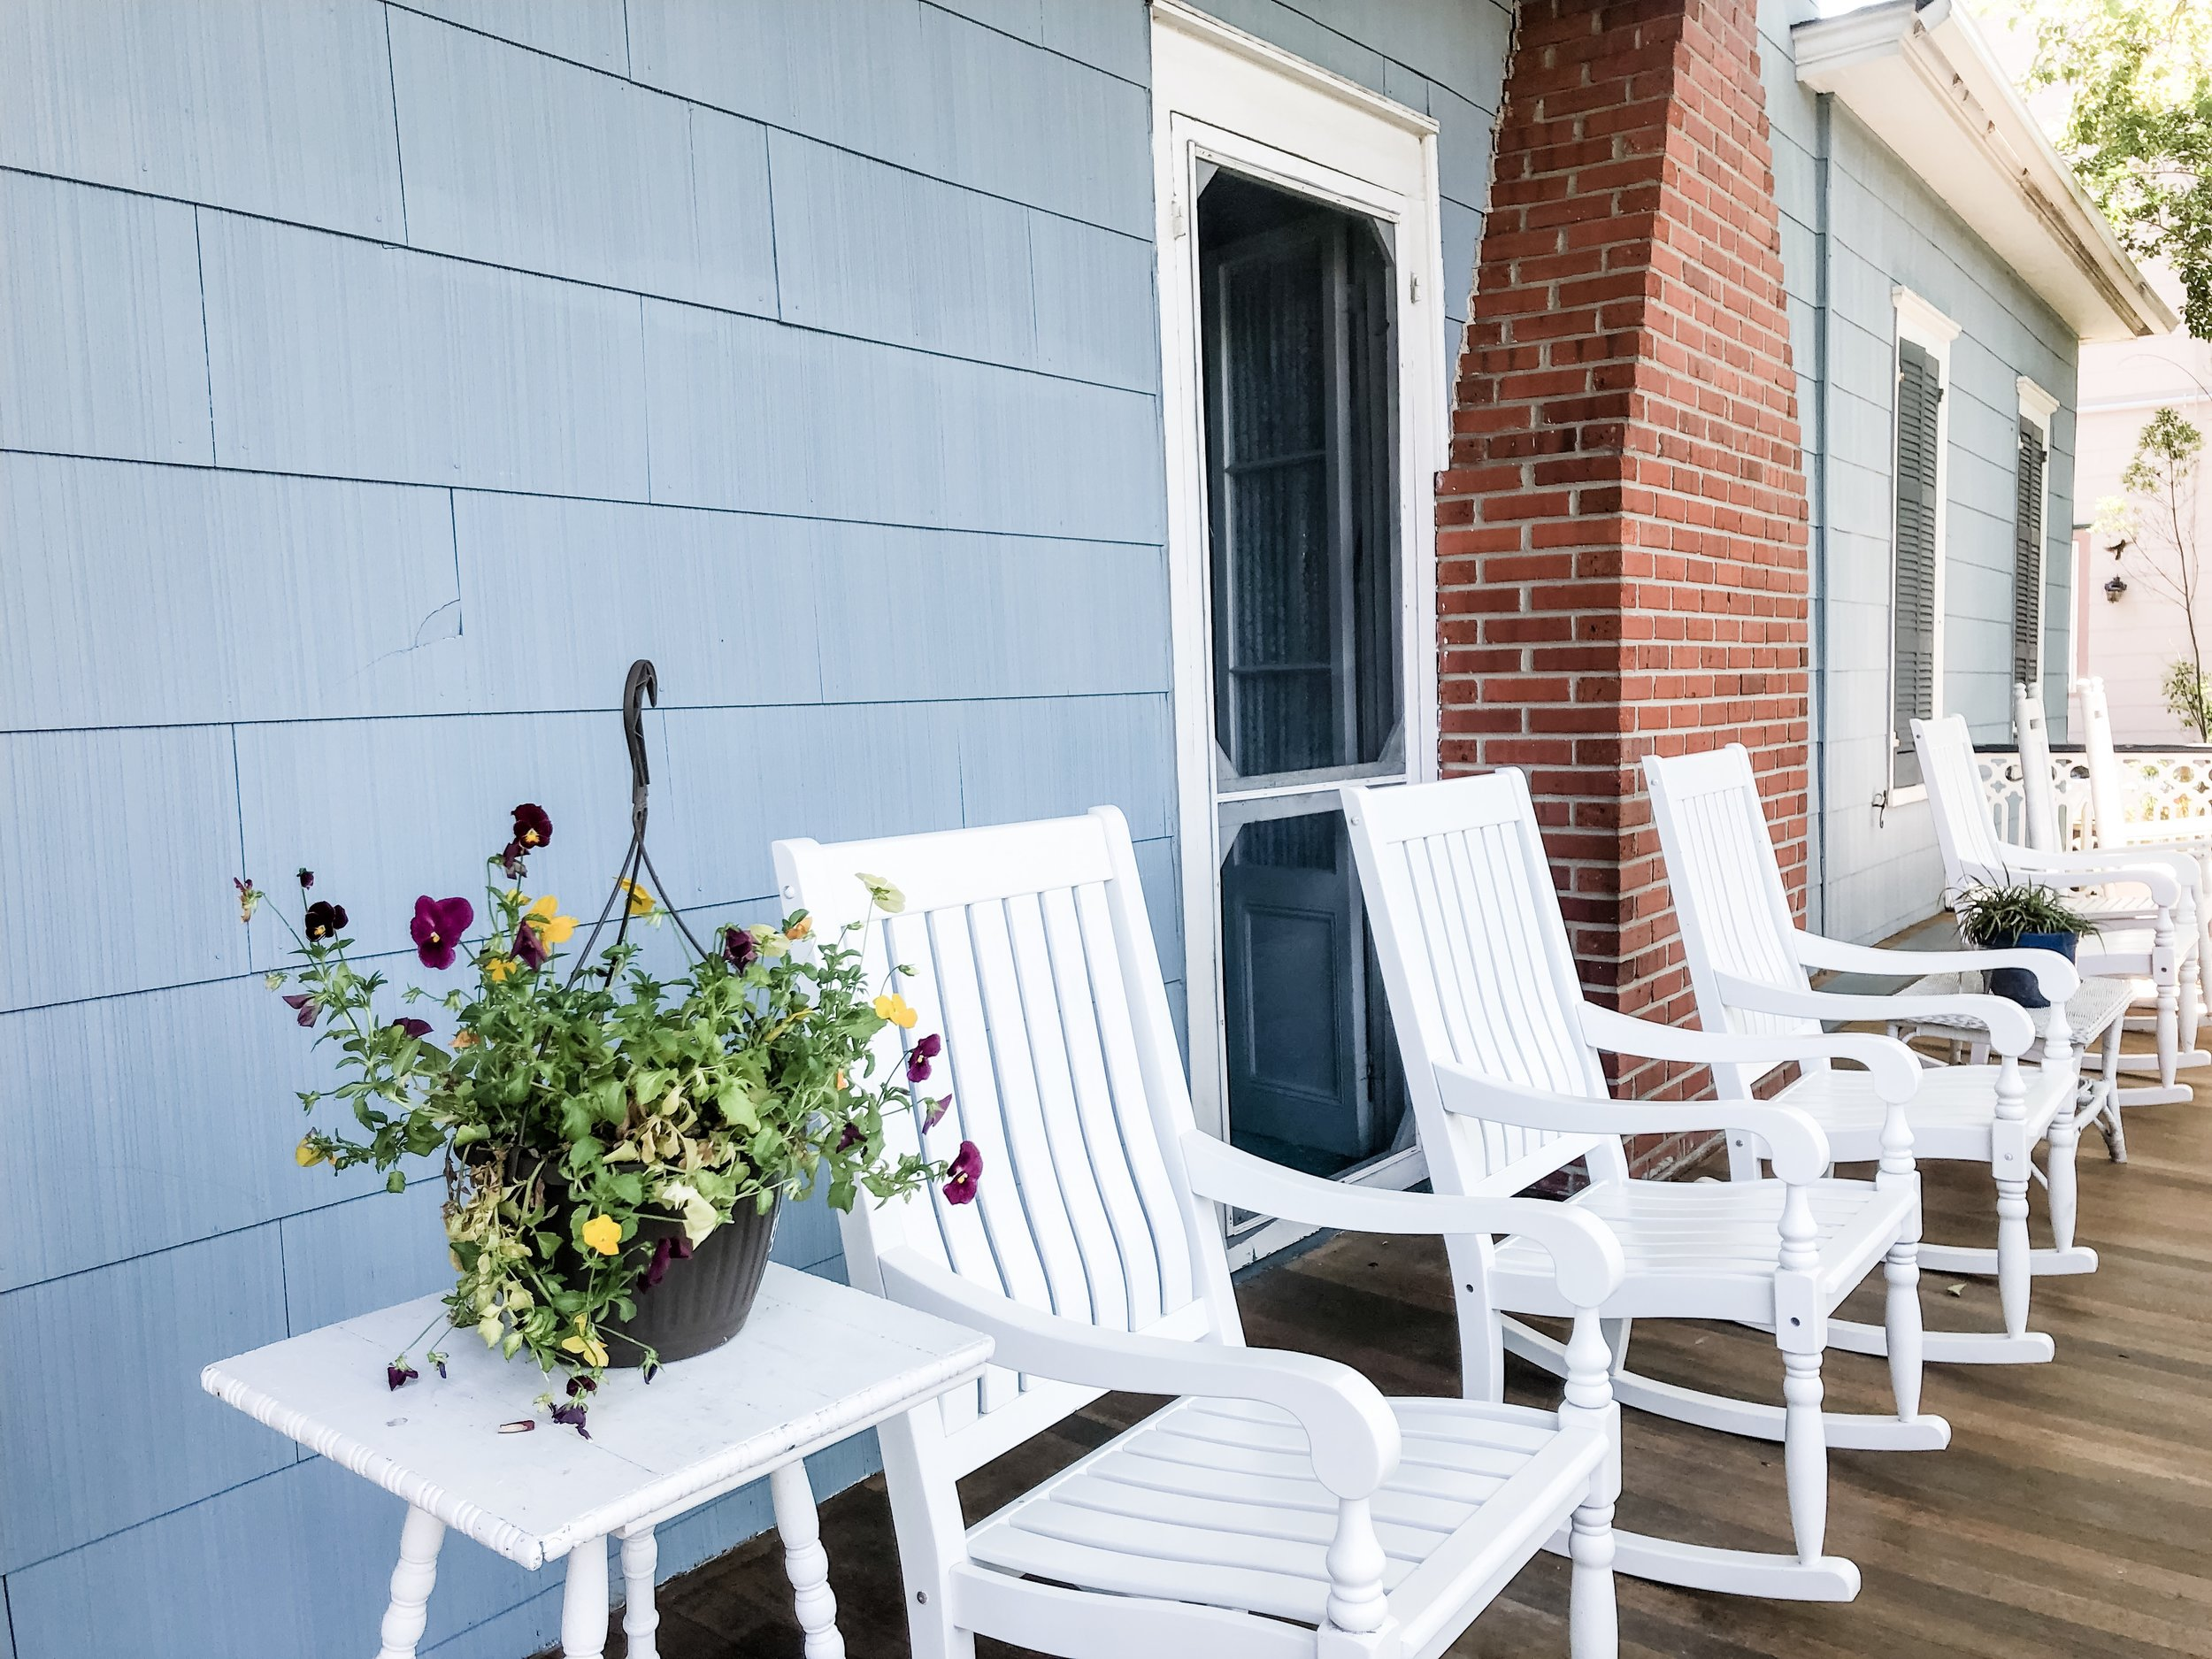 Enjoy morning tea or a chat on the front porch of the historic Holiday House